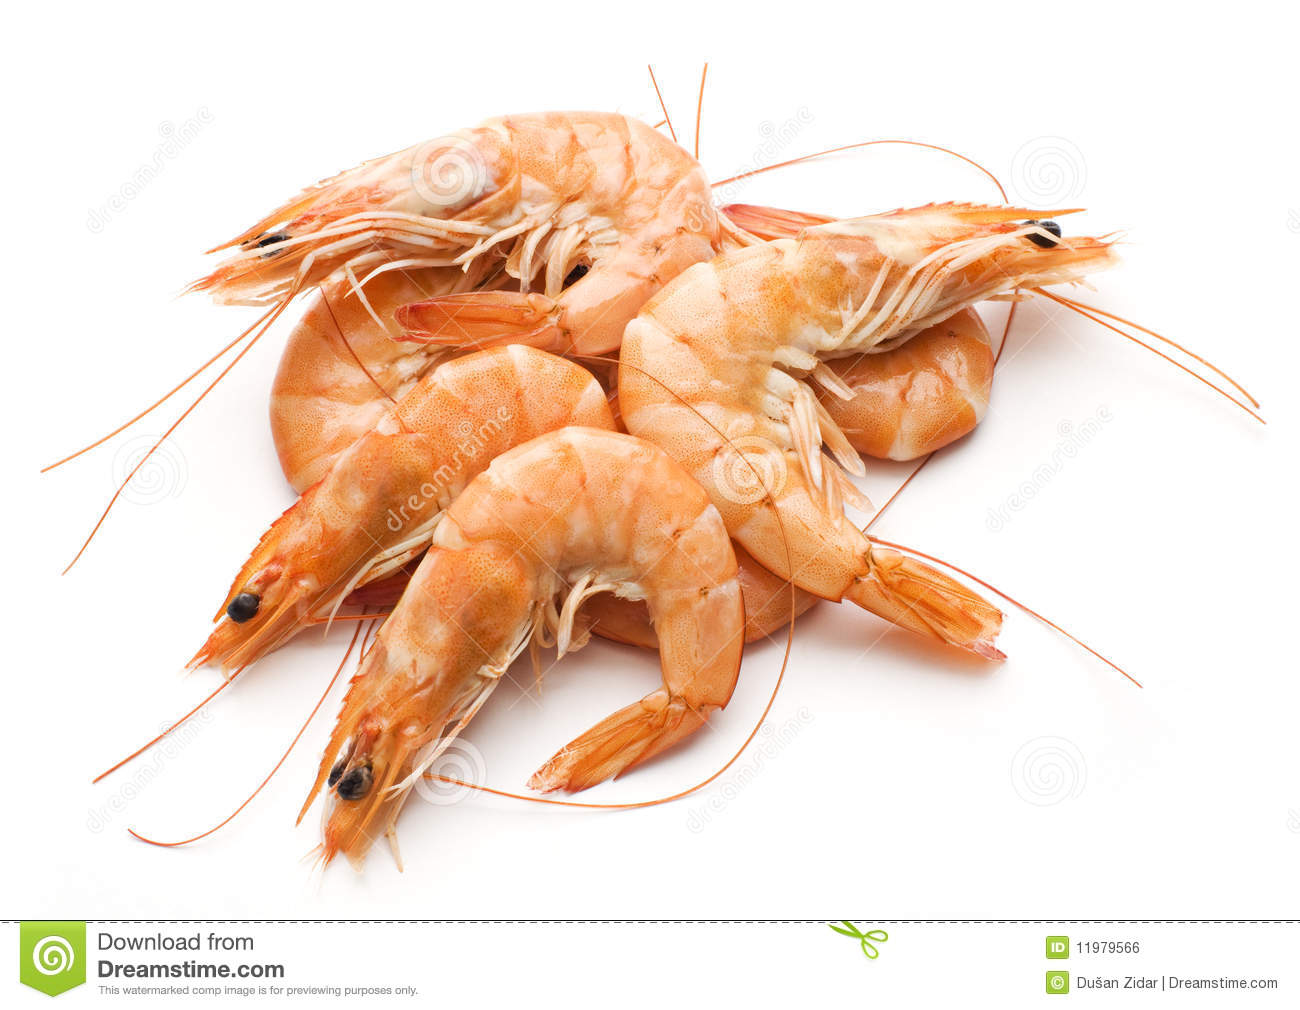 Prawn Royalty Free Stock Image - Image: 11979566